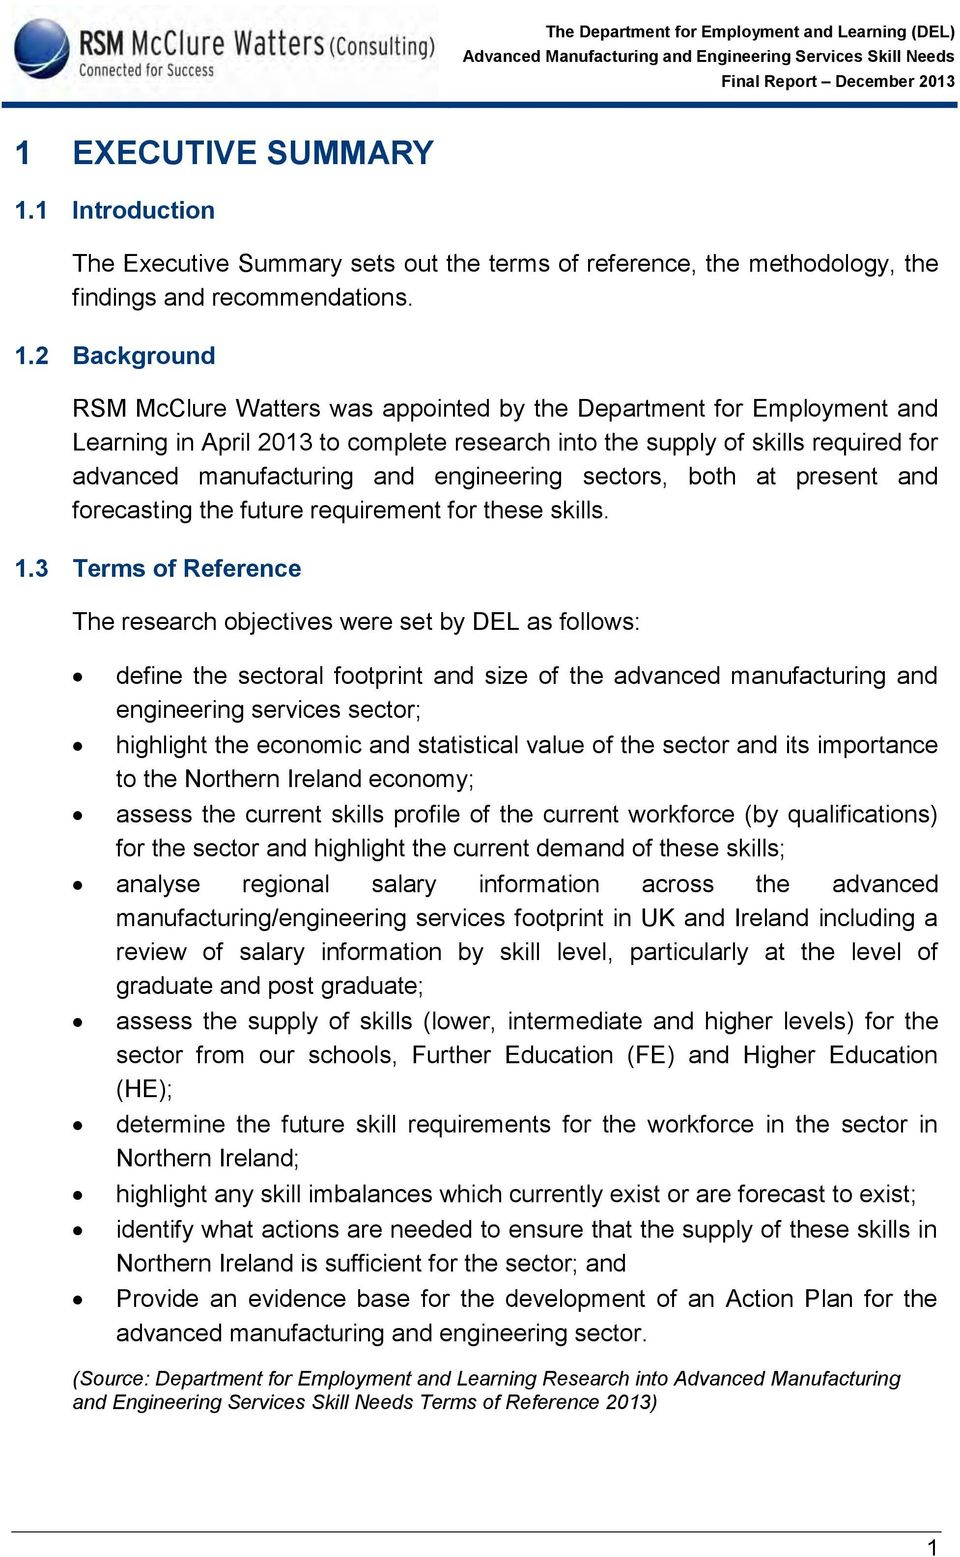 2 Background RSM McClure Watters was appointed by the Department for Employment and Learning in April 2013 to complete research into the supply of skills required for advanced manufacturing and